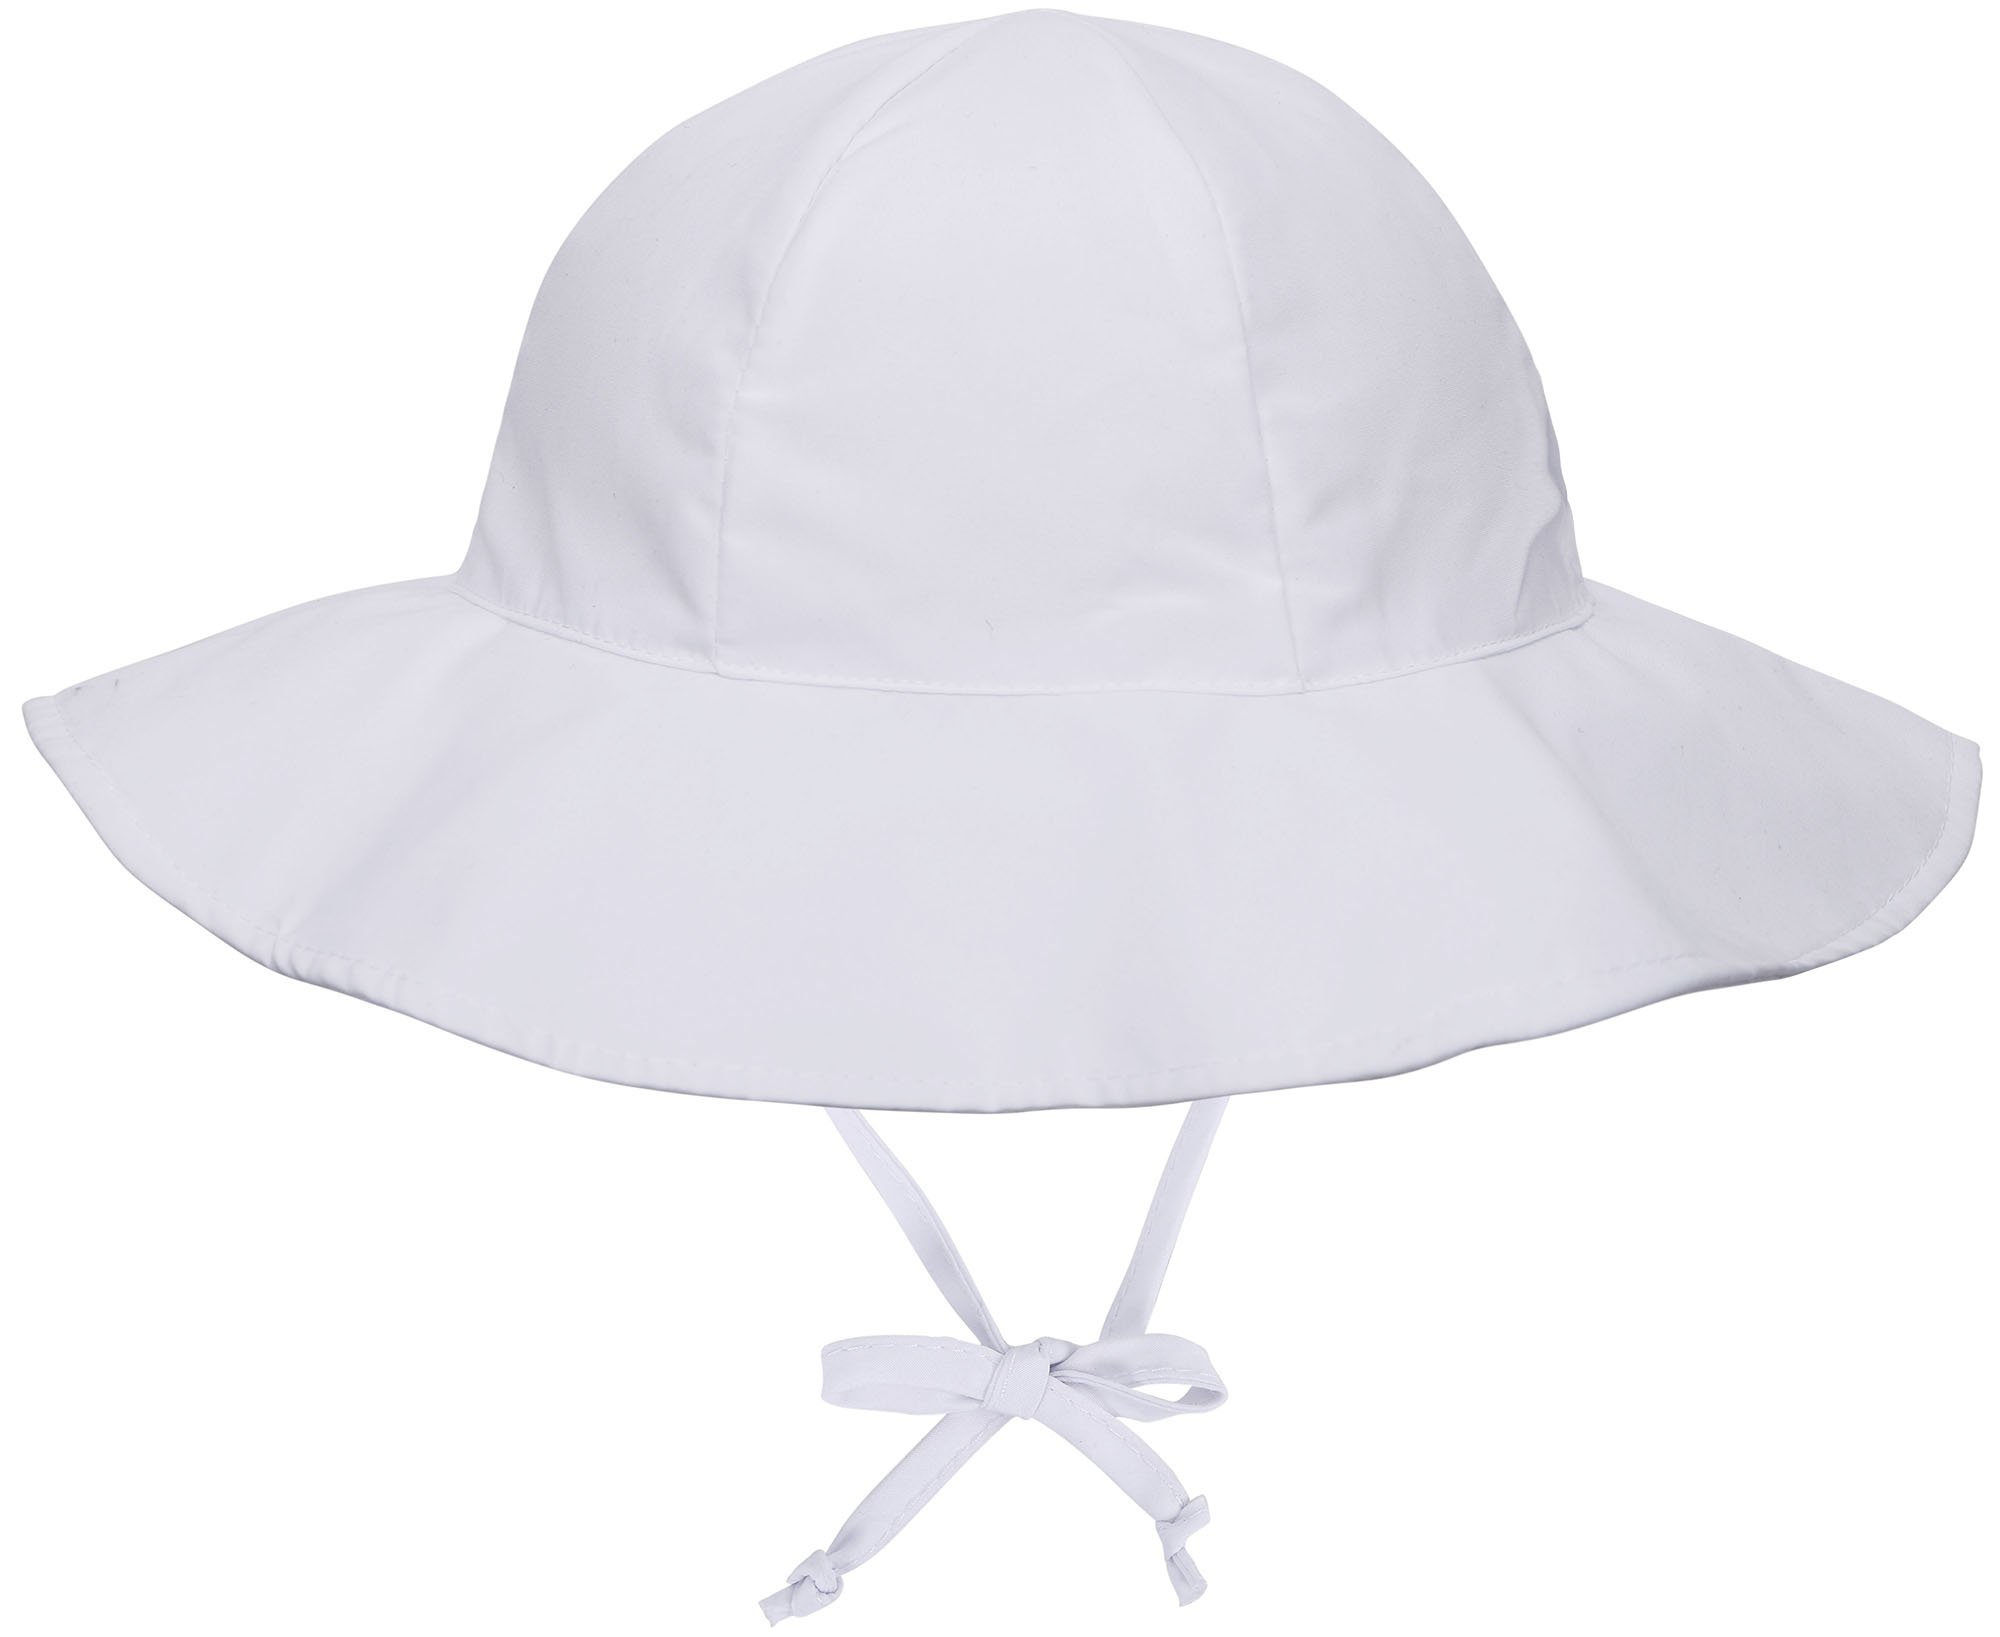 ThunderCloud Kids 50+ UPF Protective Wide Brim Sun Hat,White,0-12 Months